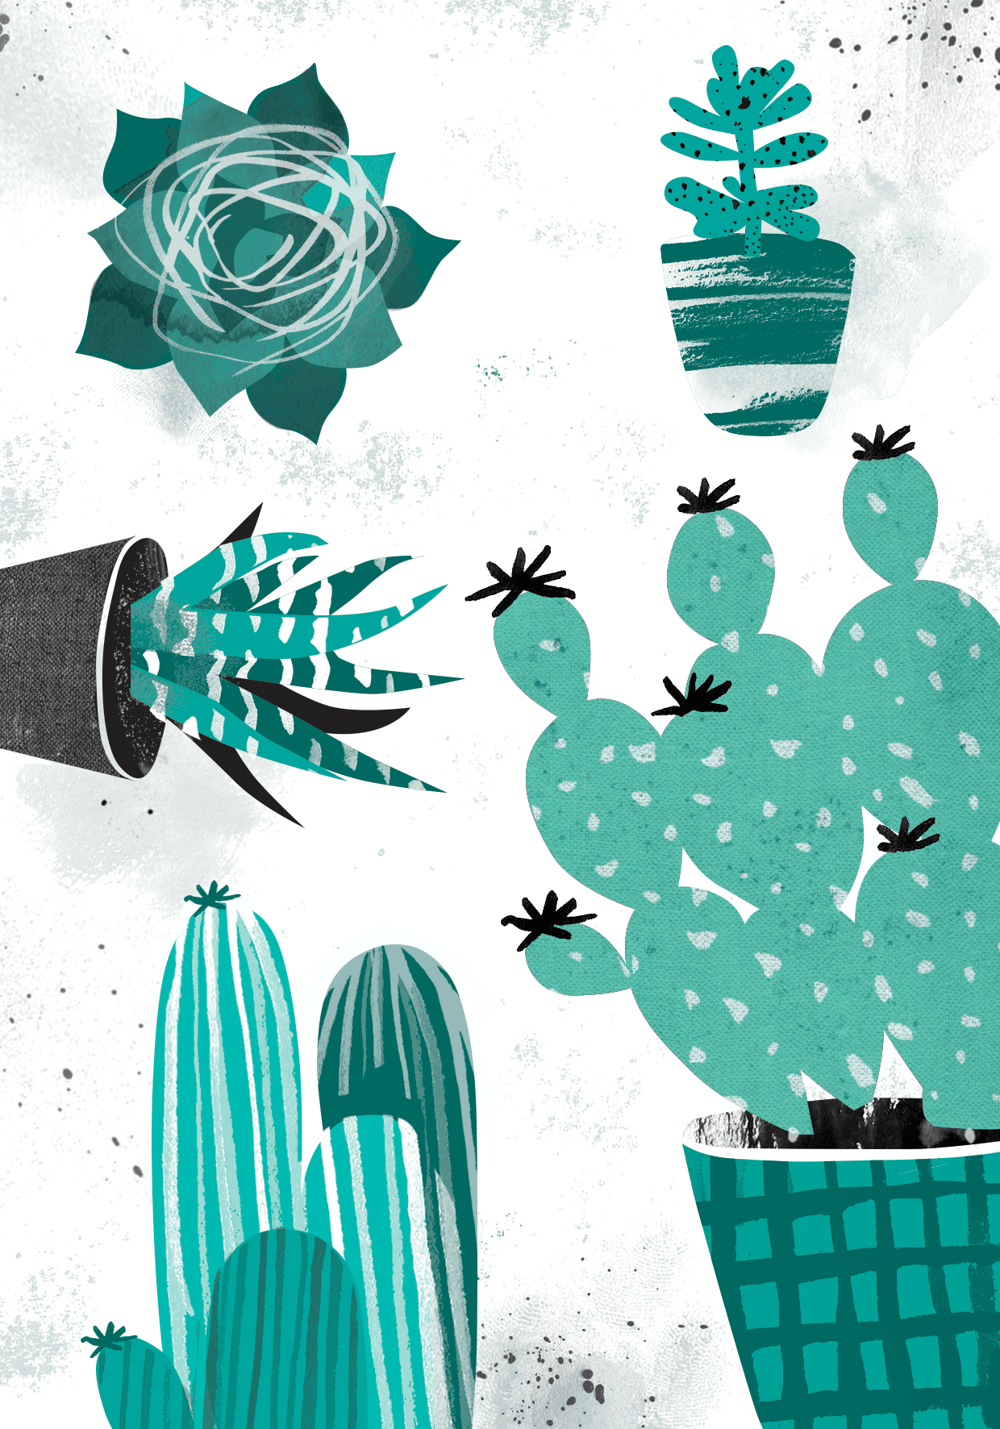 Cactus and indoor plants - image 3 - student project